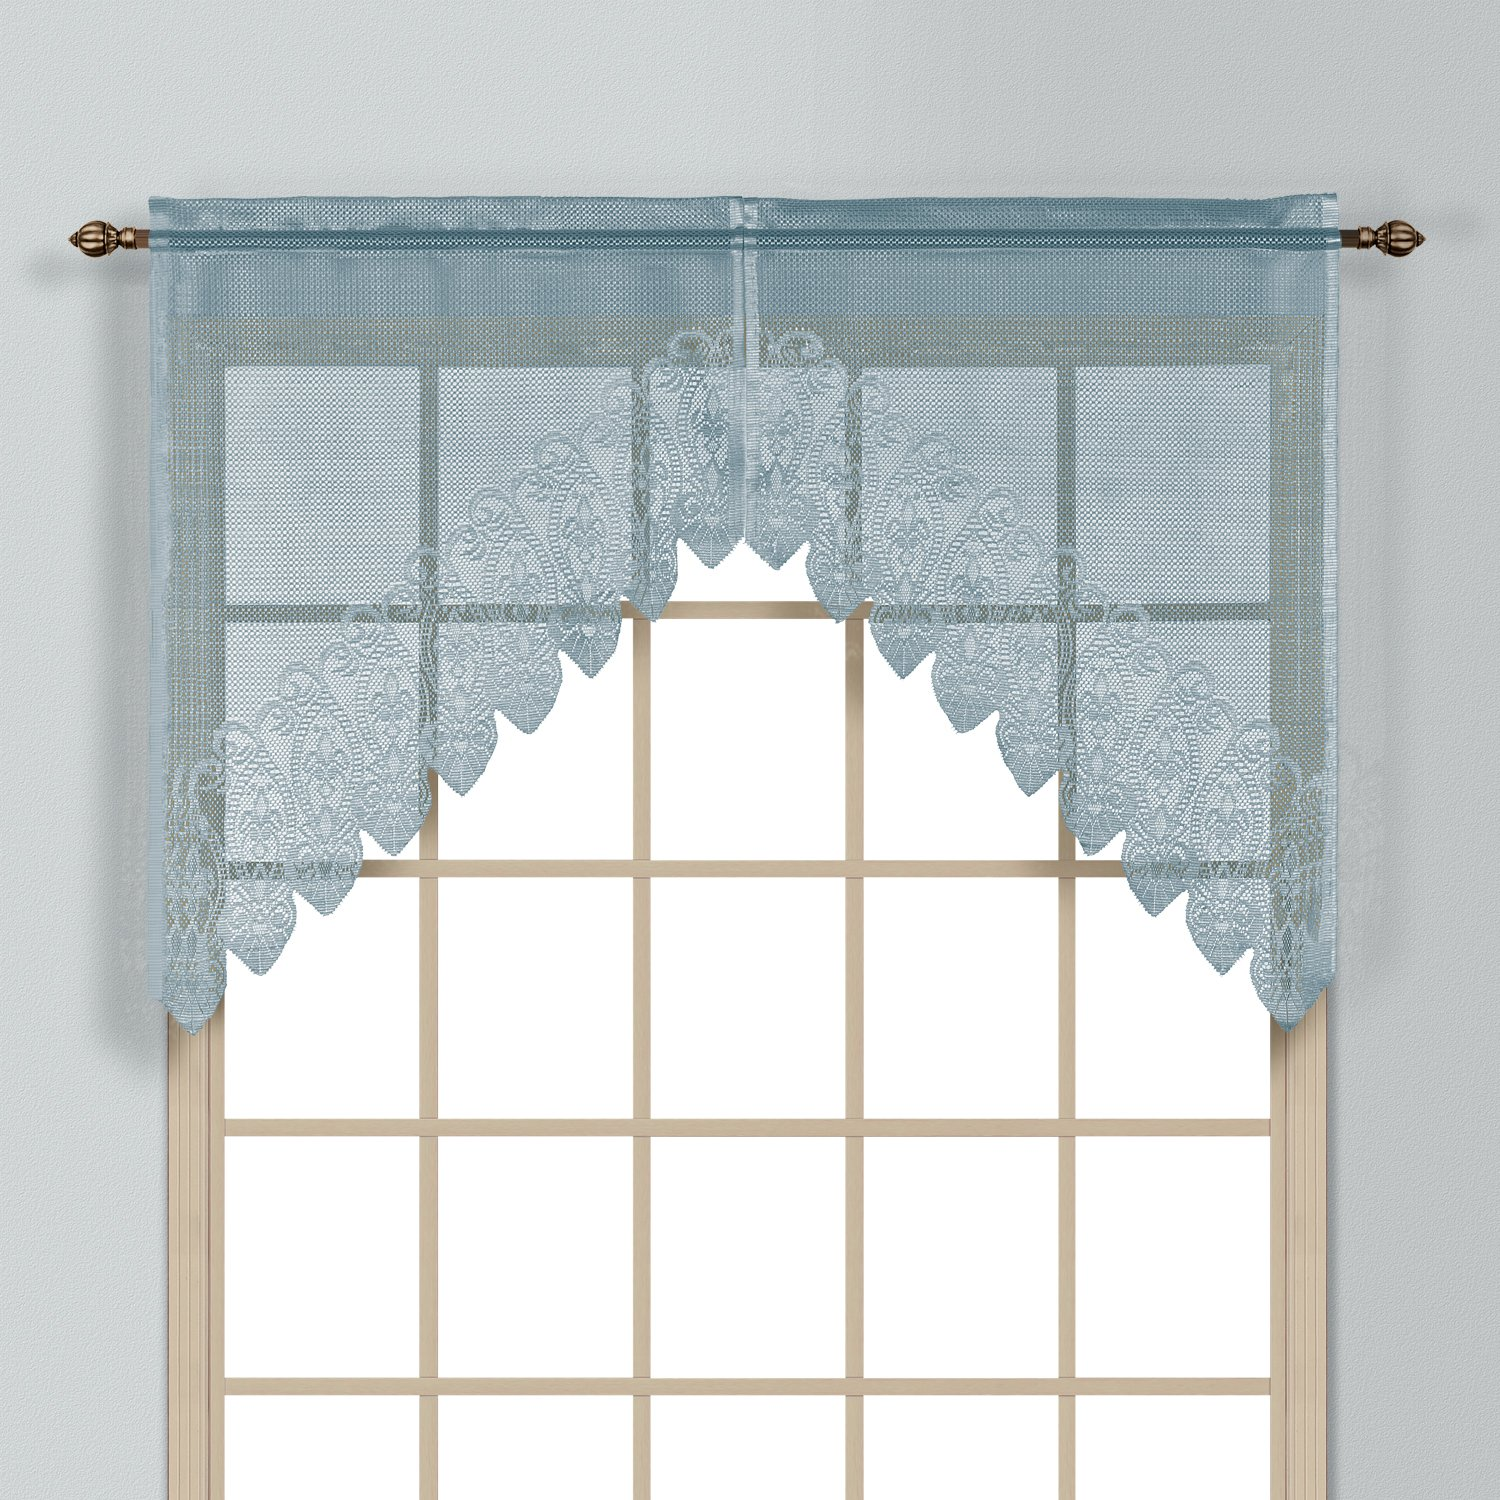 United Curtain Valerie Lace Sheer Swags, 52 by 38-Inch, Blue, Set of 2 VAL38BL